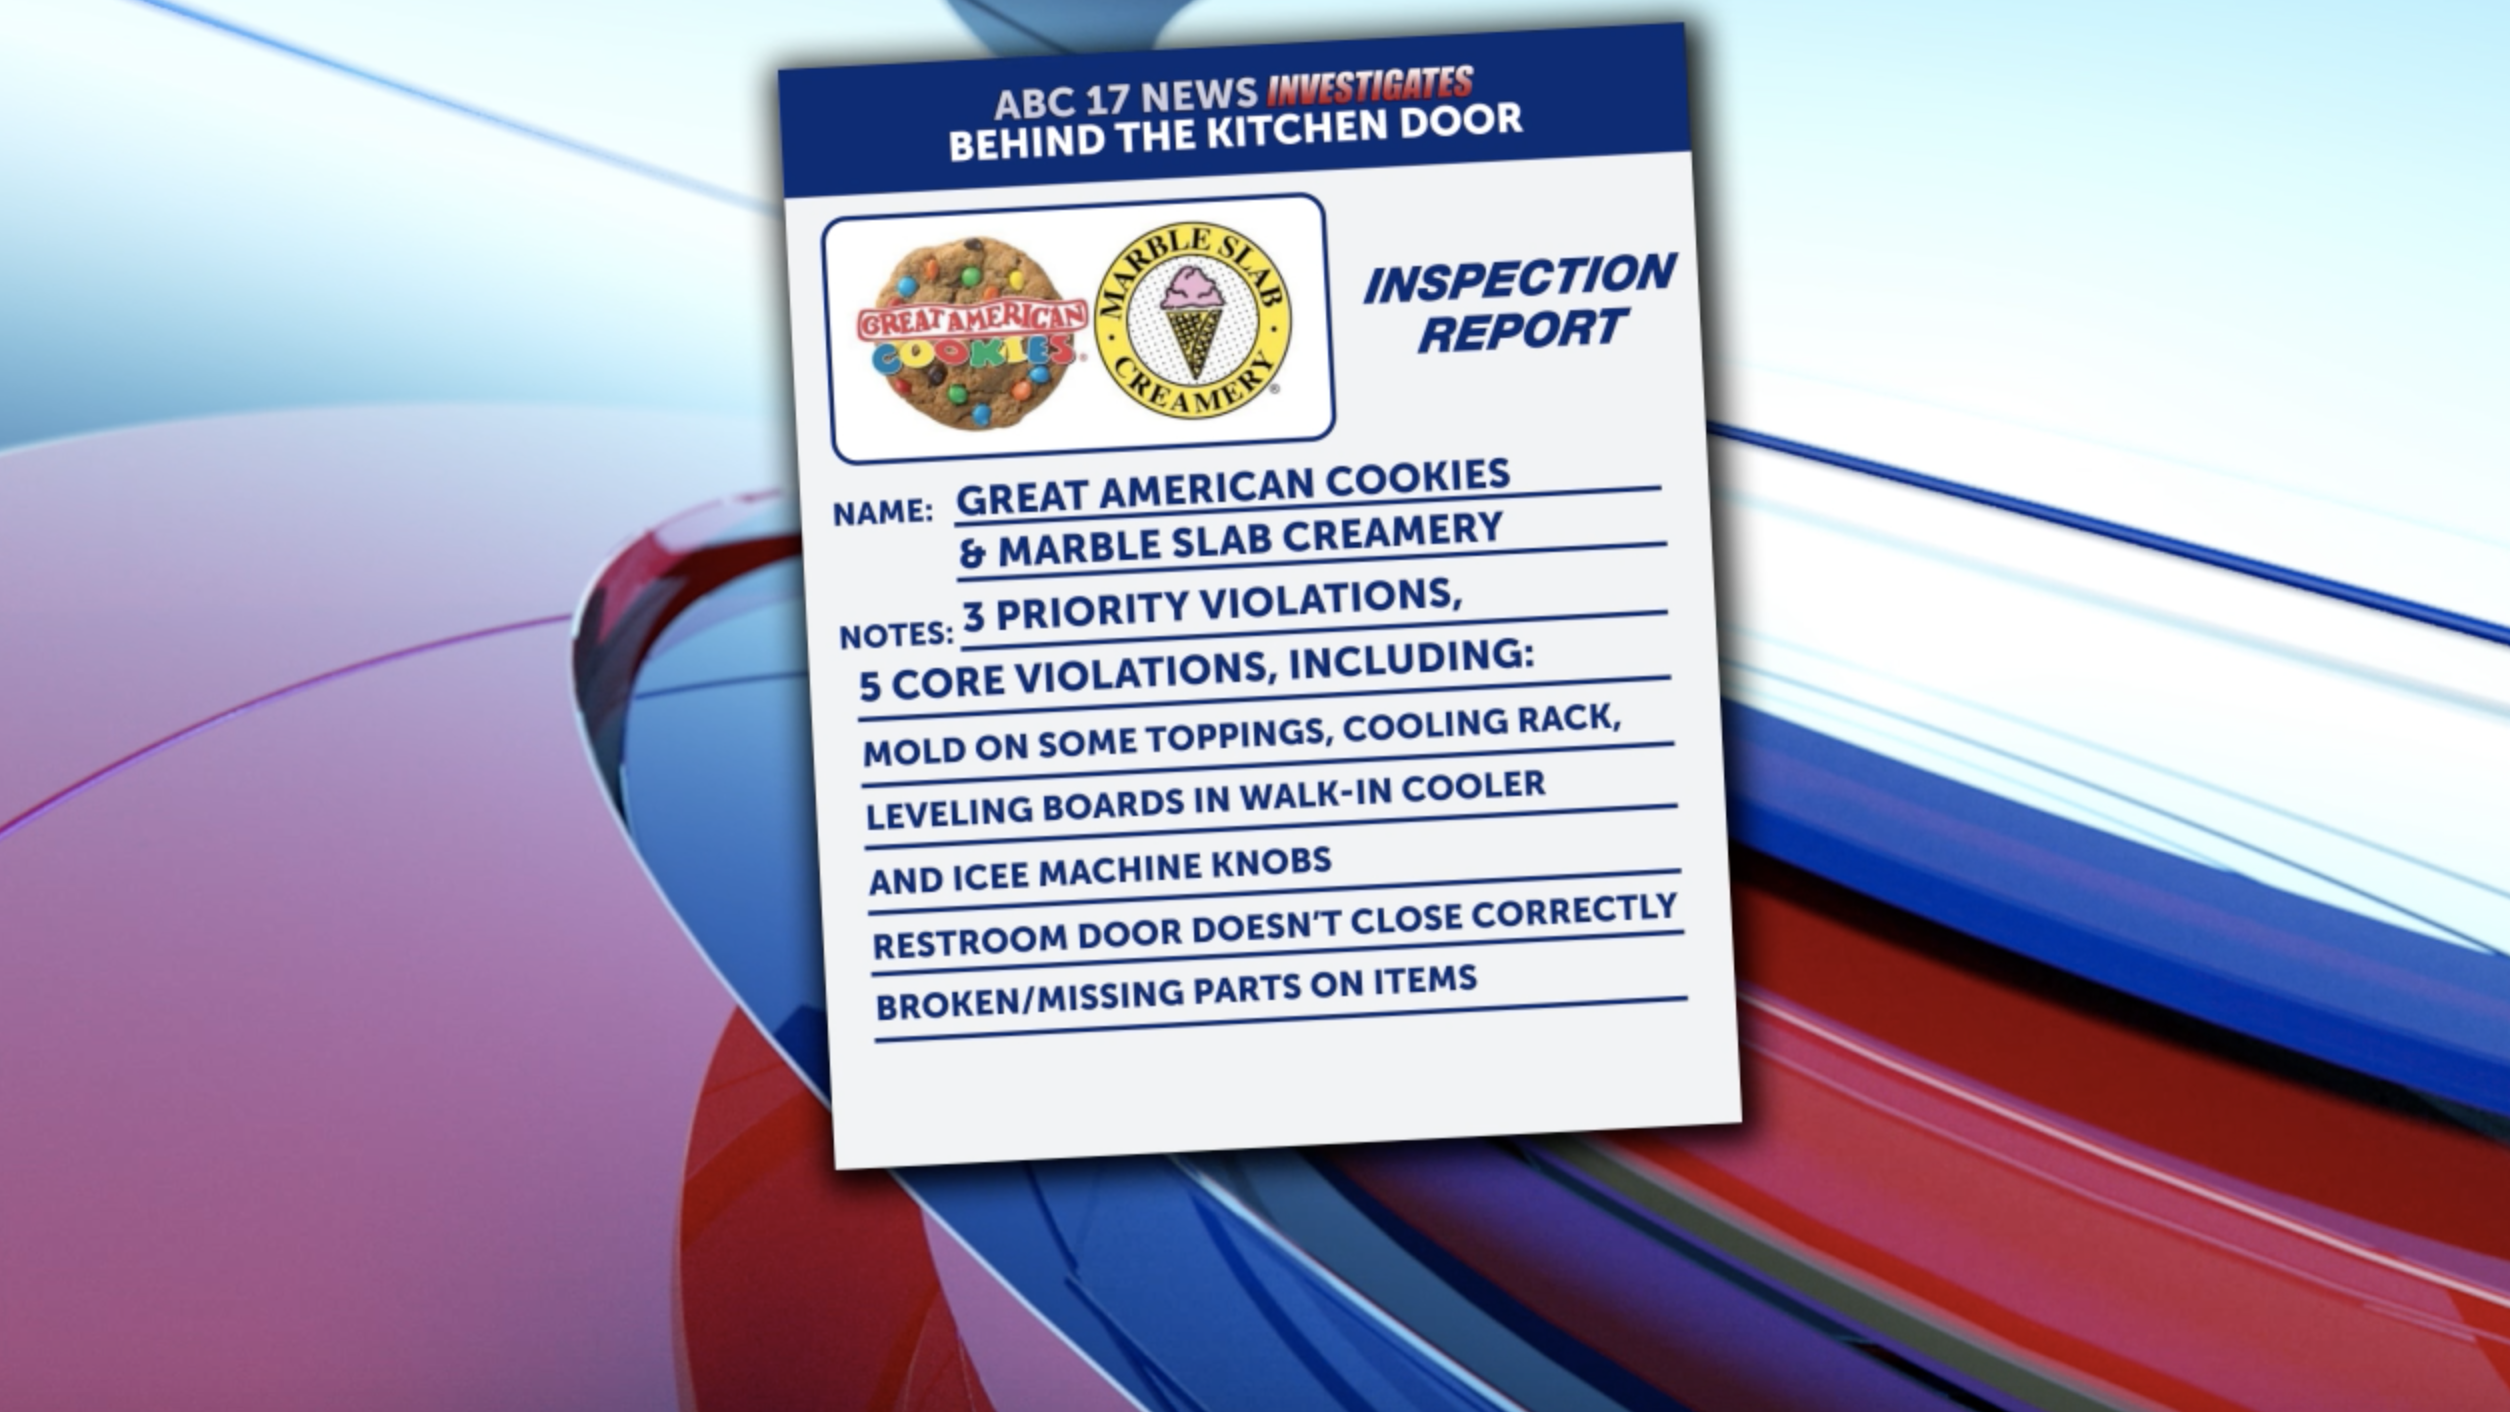 Great American Cookies in Jefferson City inspection results from August.